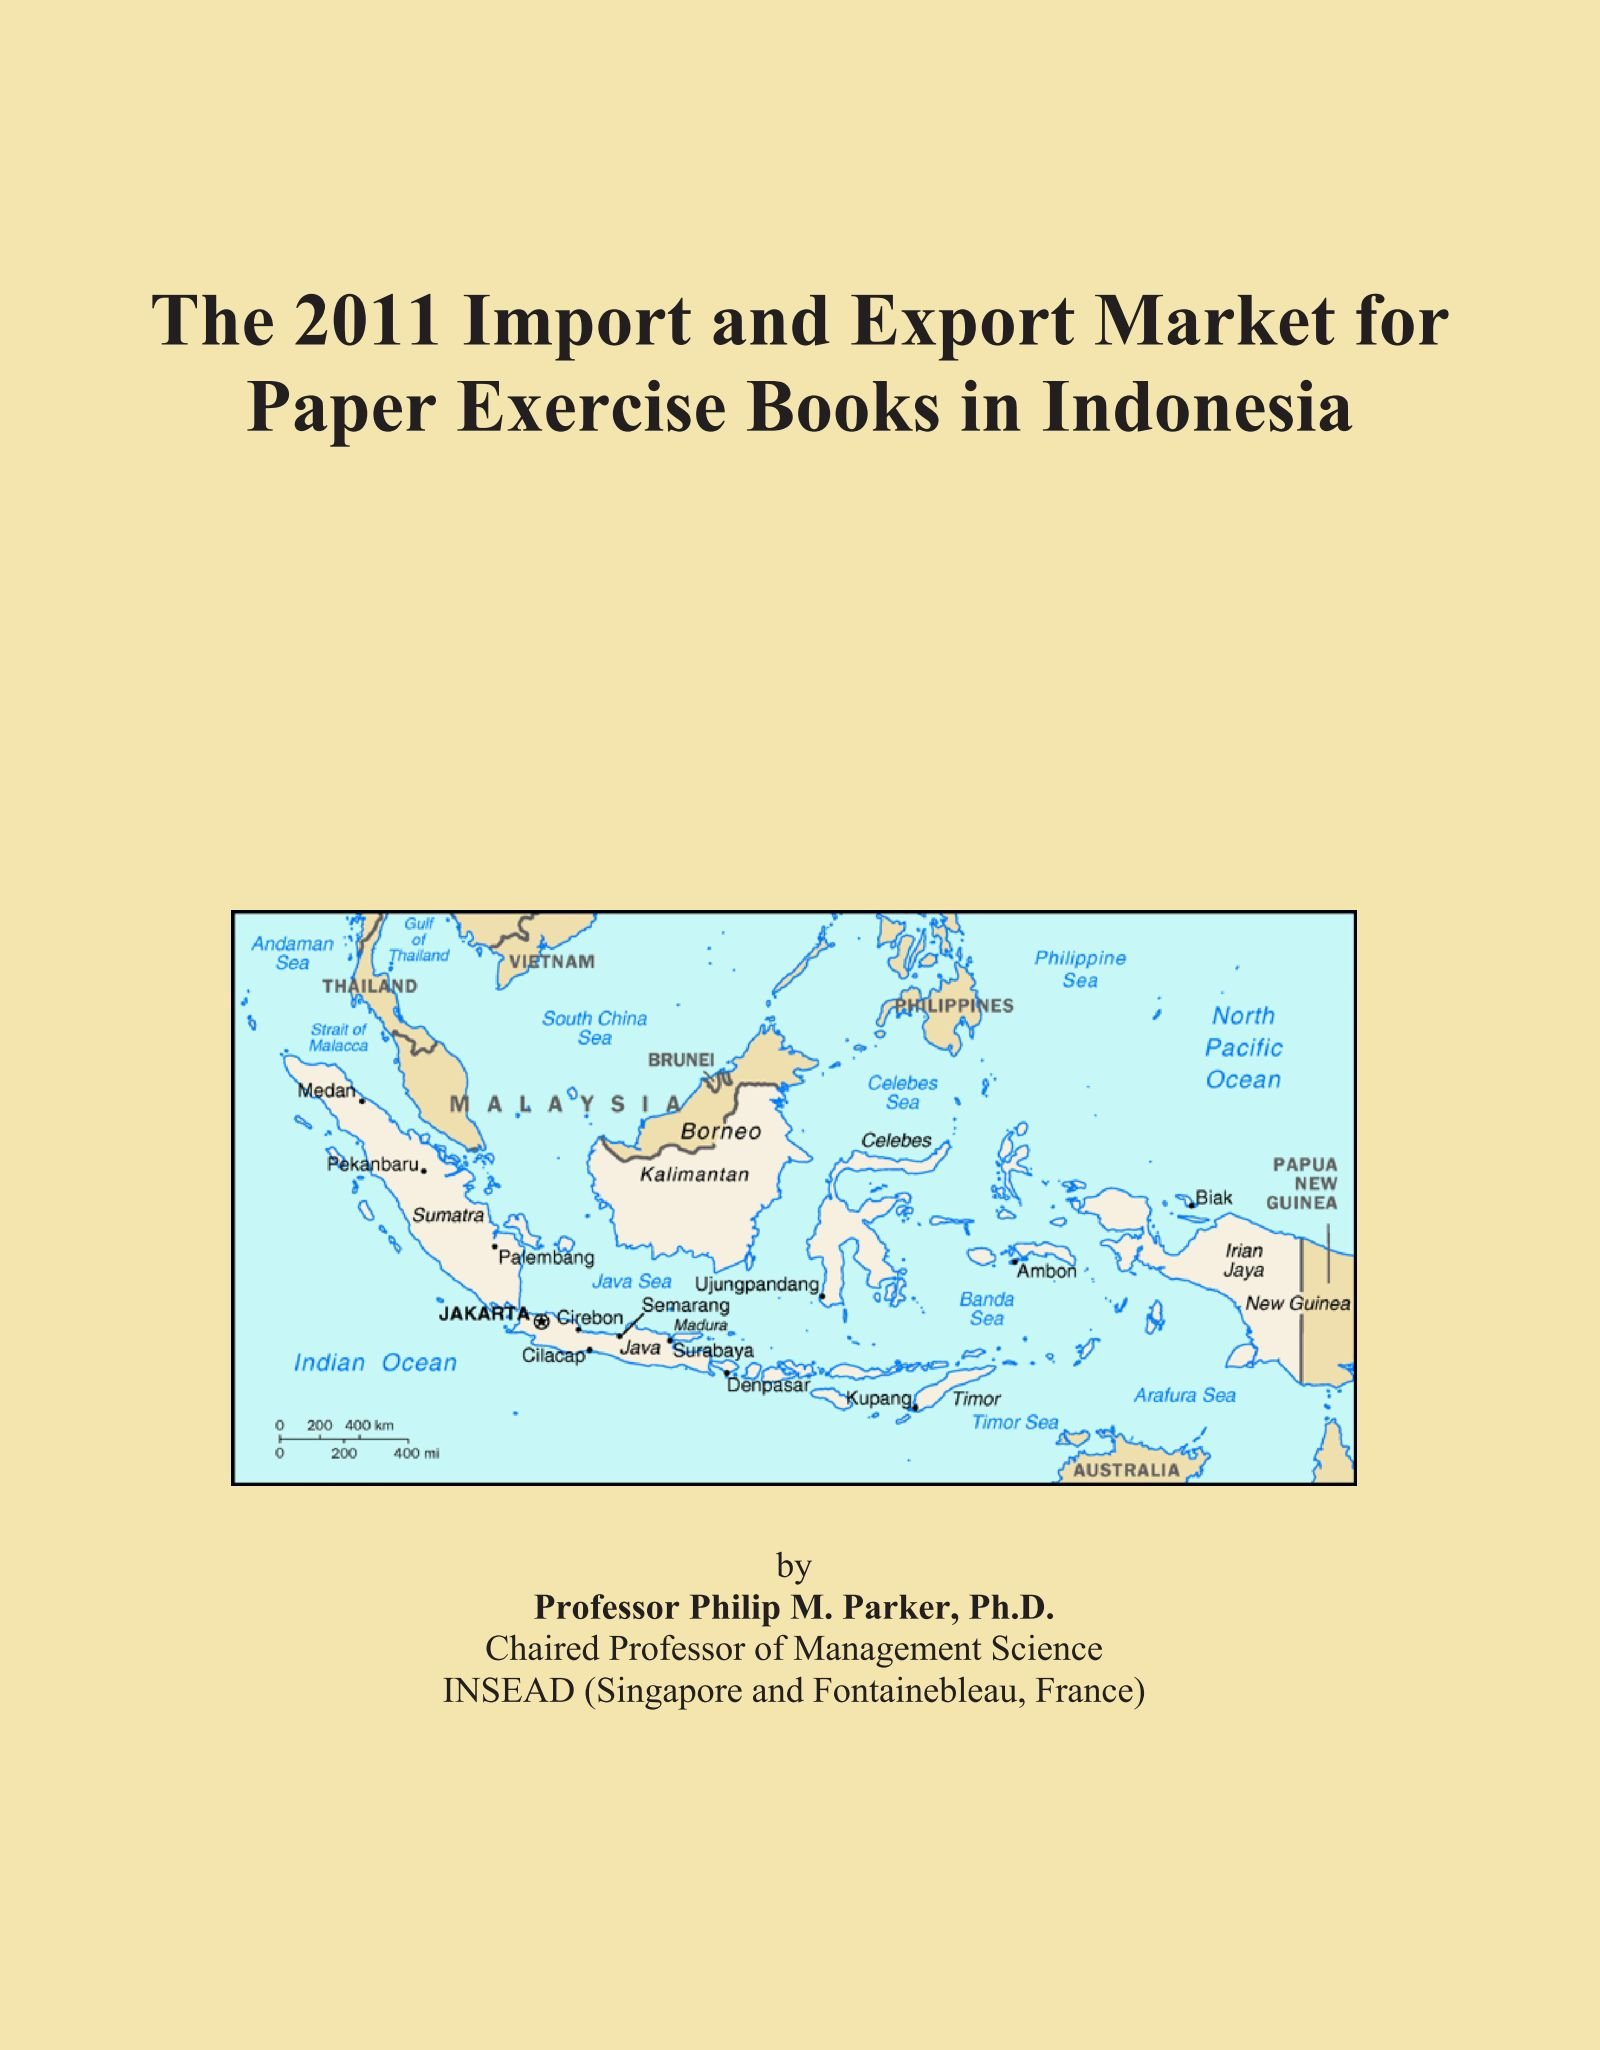 The 2011 Import and Export Market for Paper Exercise Books